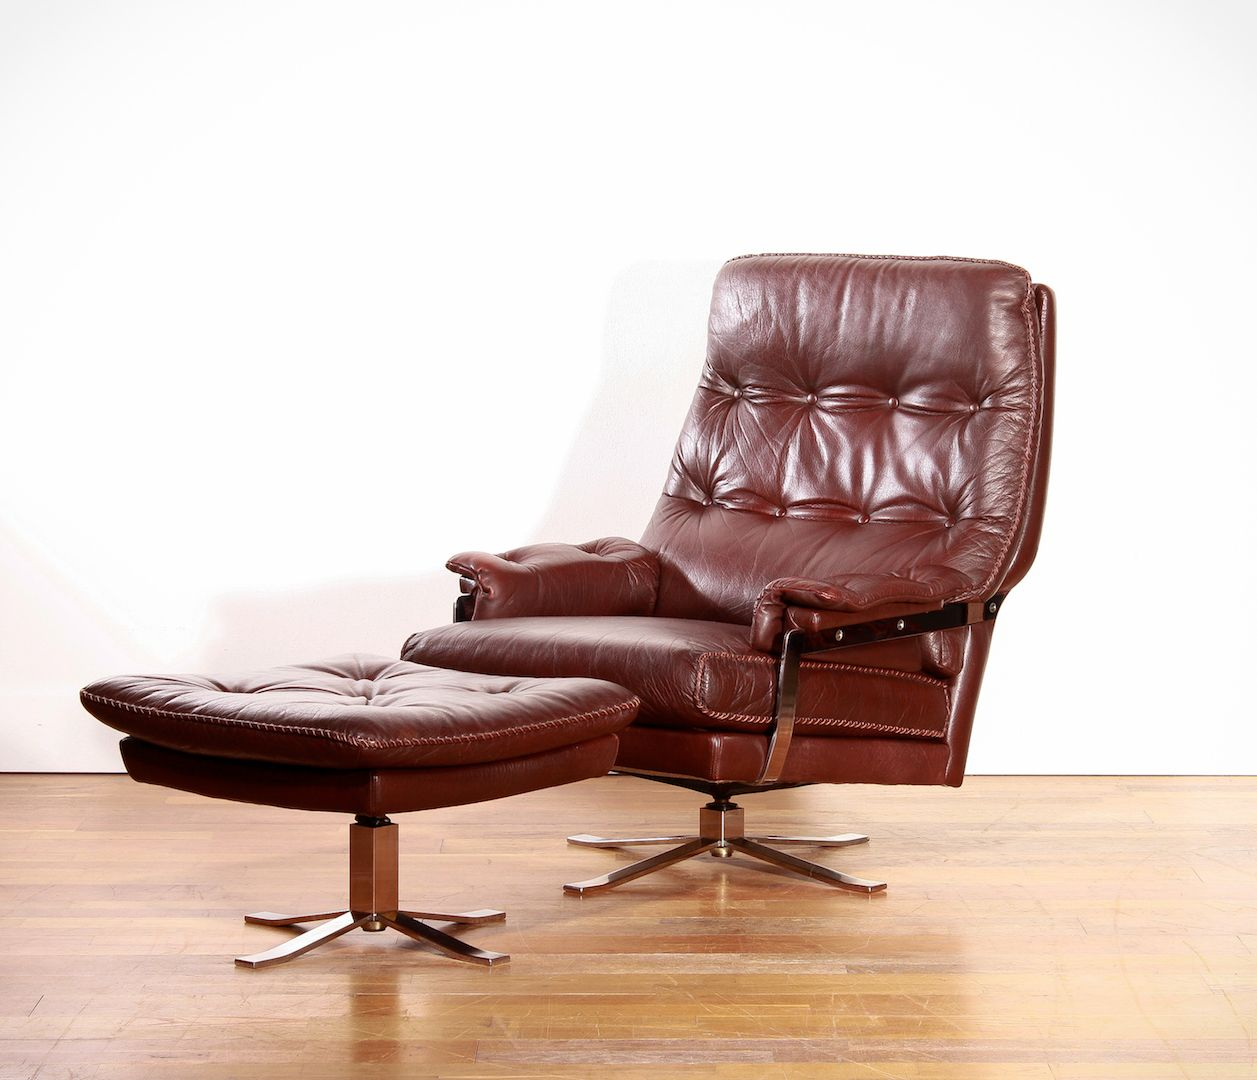 Lounge Chair & Ottoman by Arne Norell for Vatne Møbler 1960s for sale at